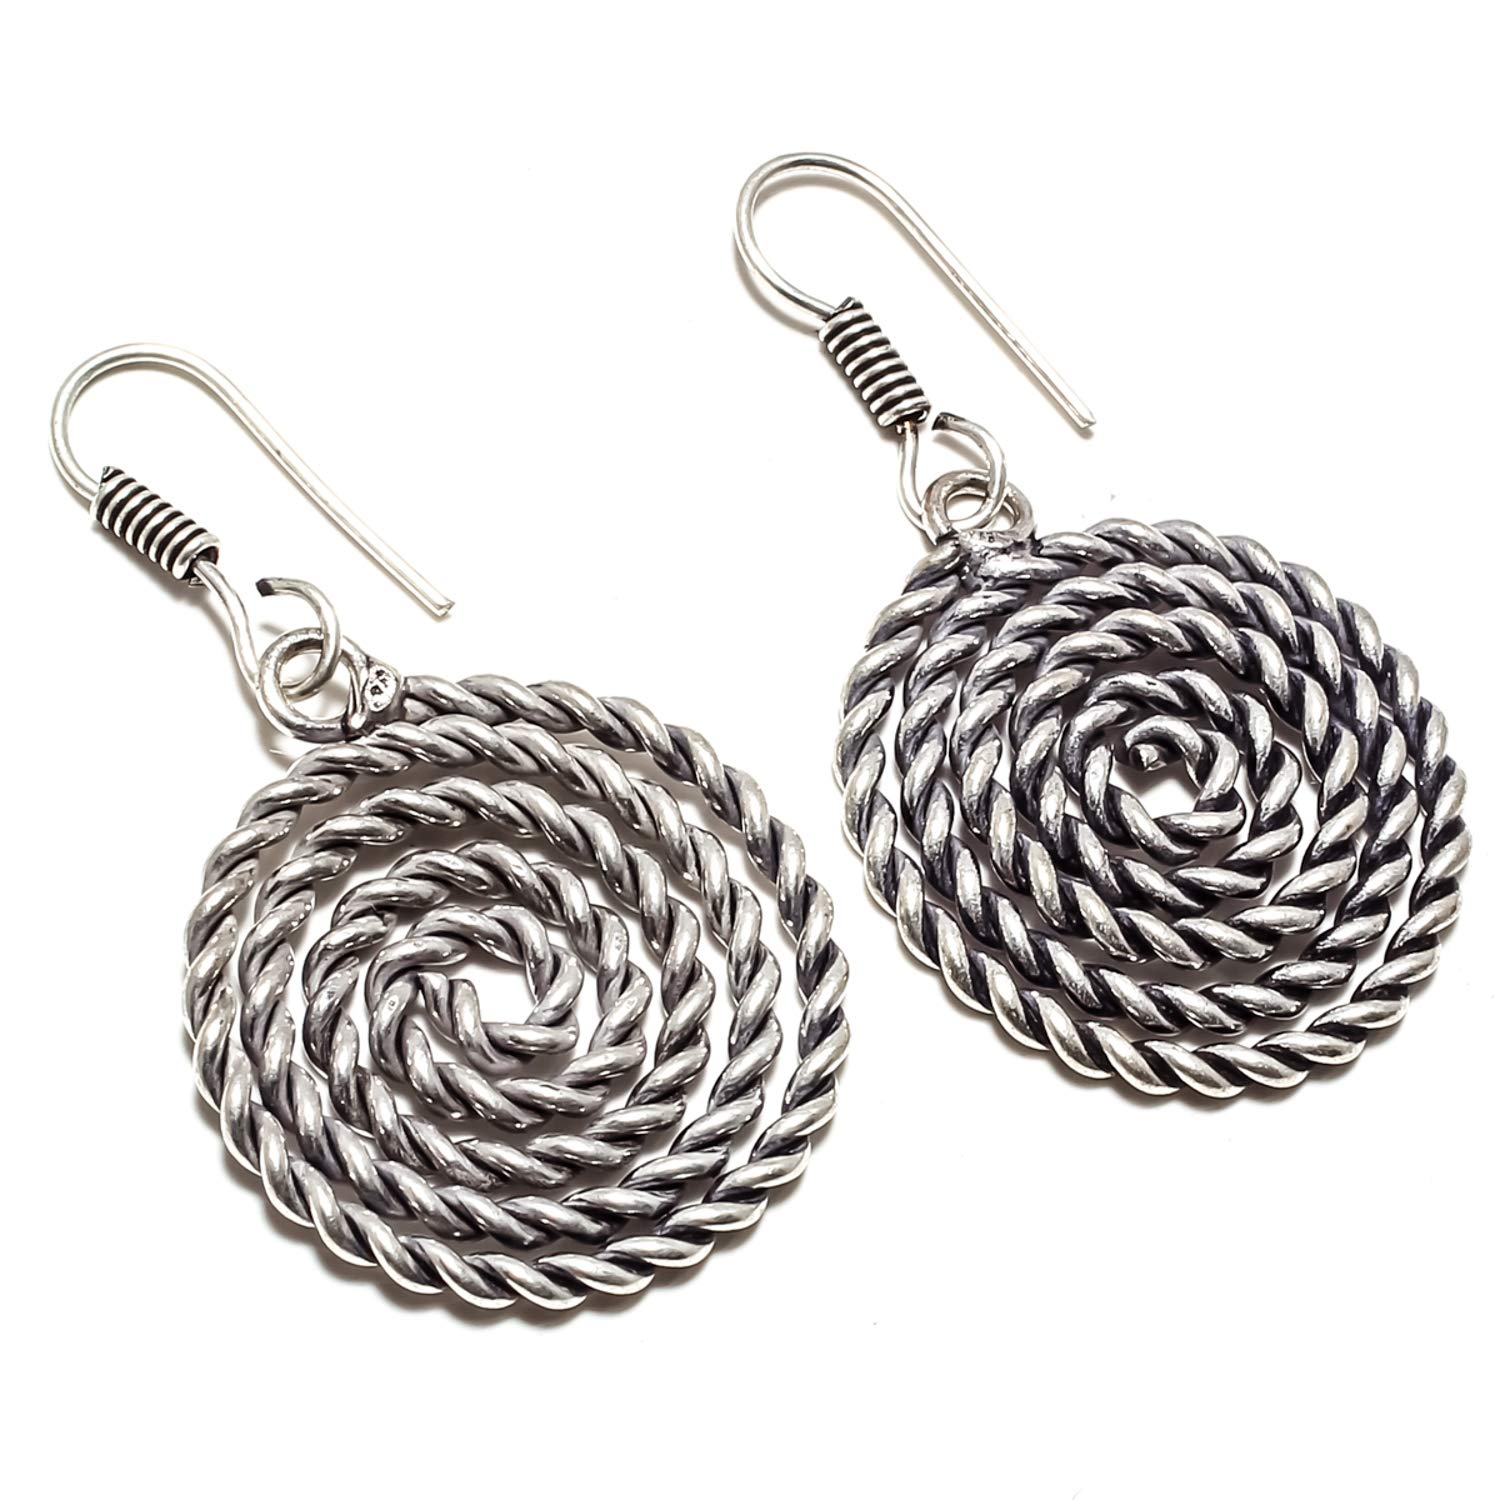 SF-2367 Stunning Round Loop Charms Earring Vintage Style Handmade 925 Sterling Silver Plated Jewelry Dangle And Drop Earring